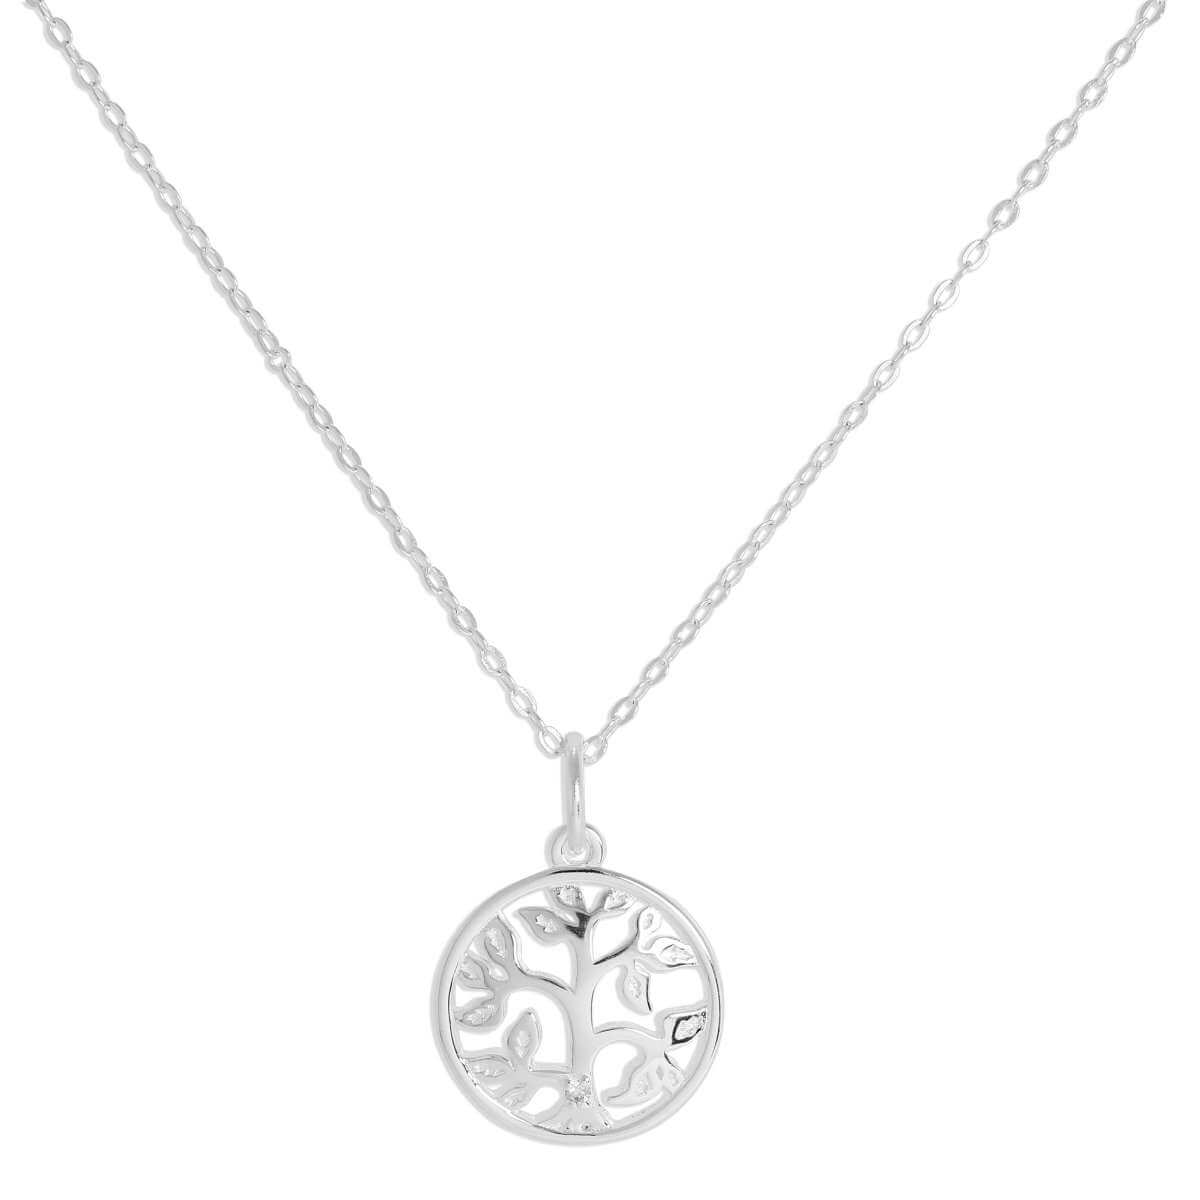 Sterling Silver & Genuine Diamond Tree of Life Necklace 16 Inches Chain